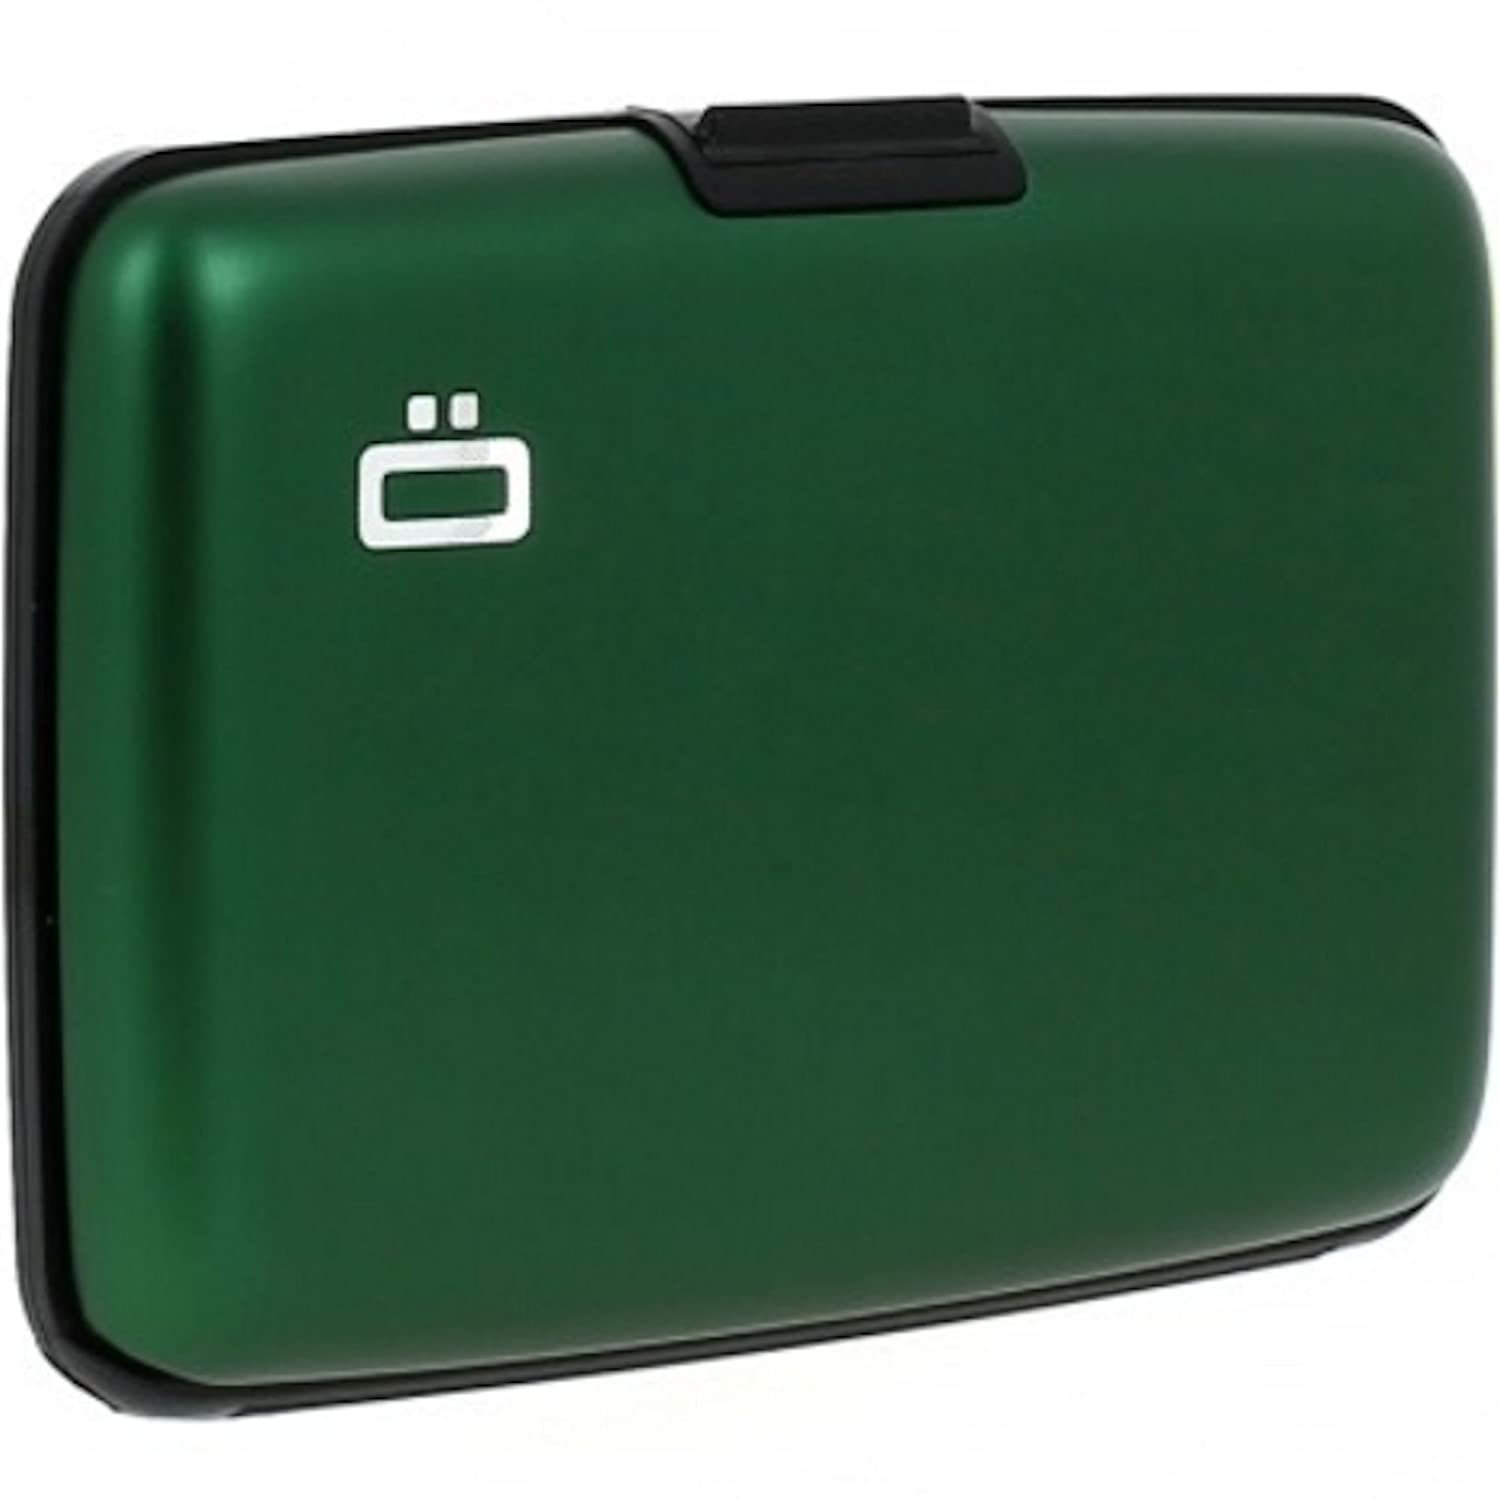 Ogon- Stockholm Green Aluminium credit card holder